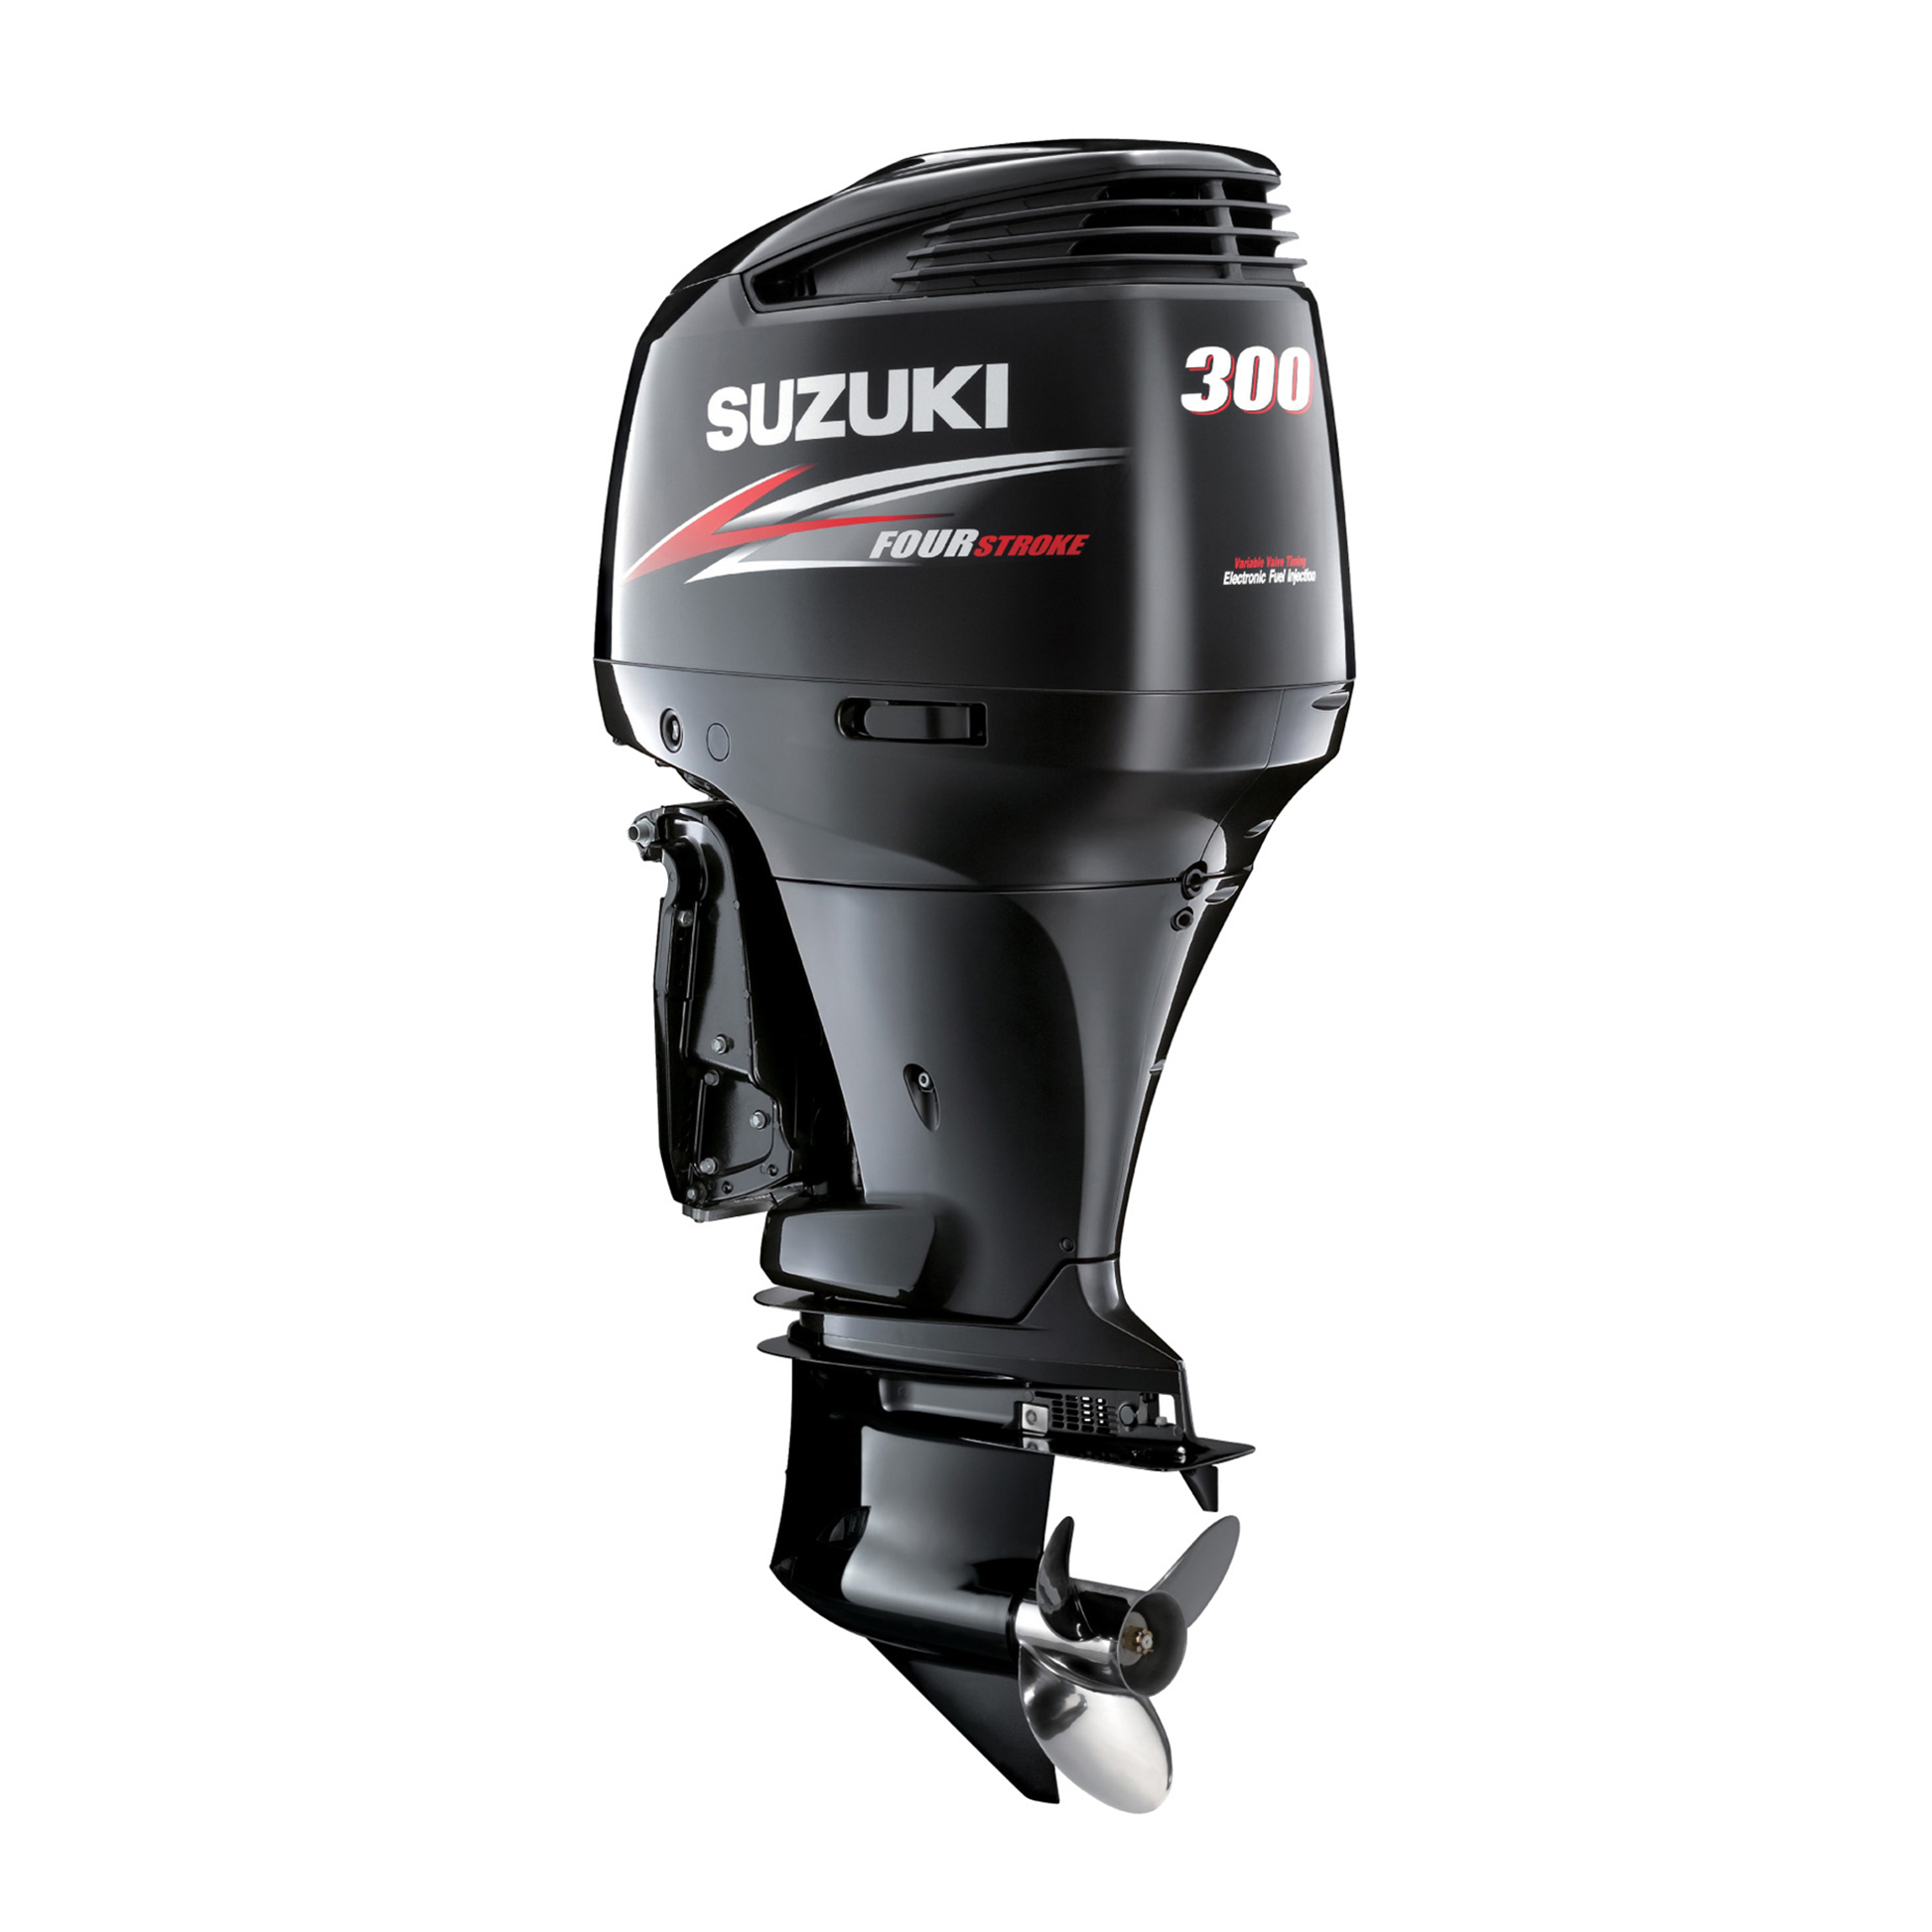 Selfmnogosofta blog for Suzuki outboard motor repair